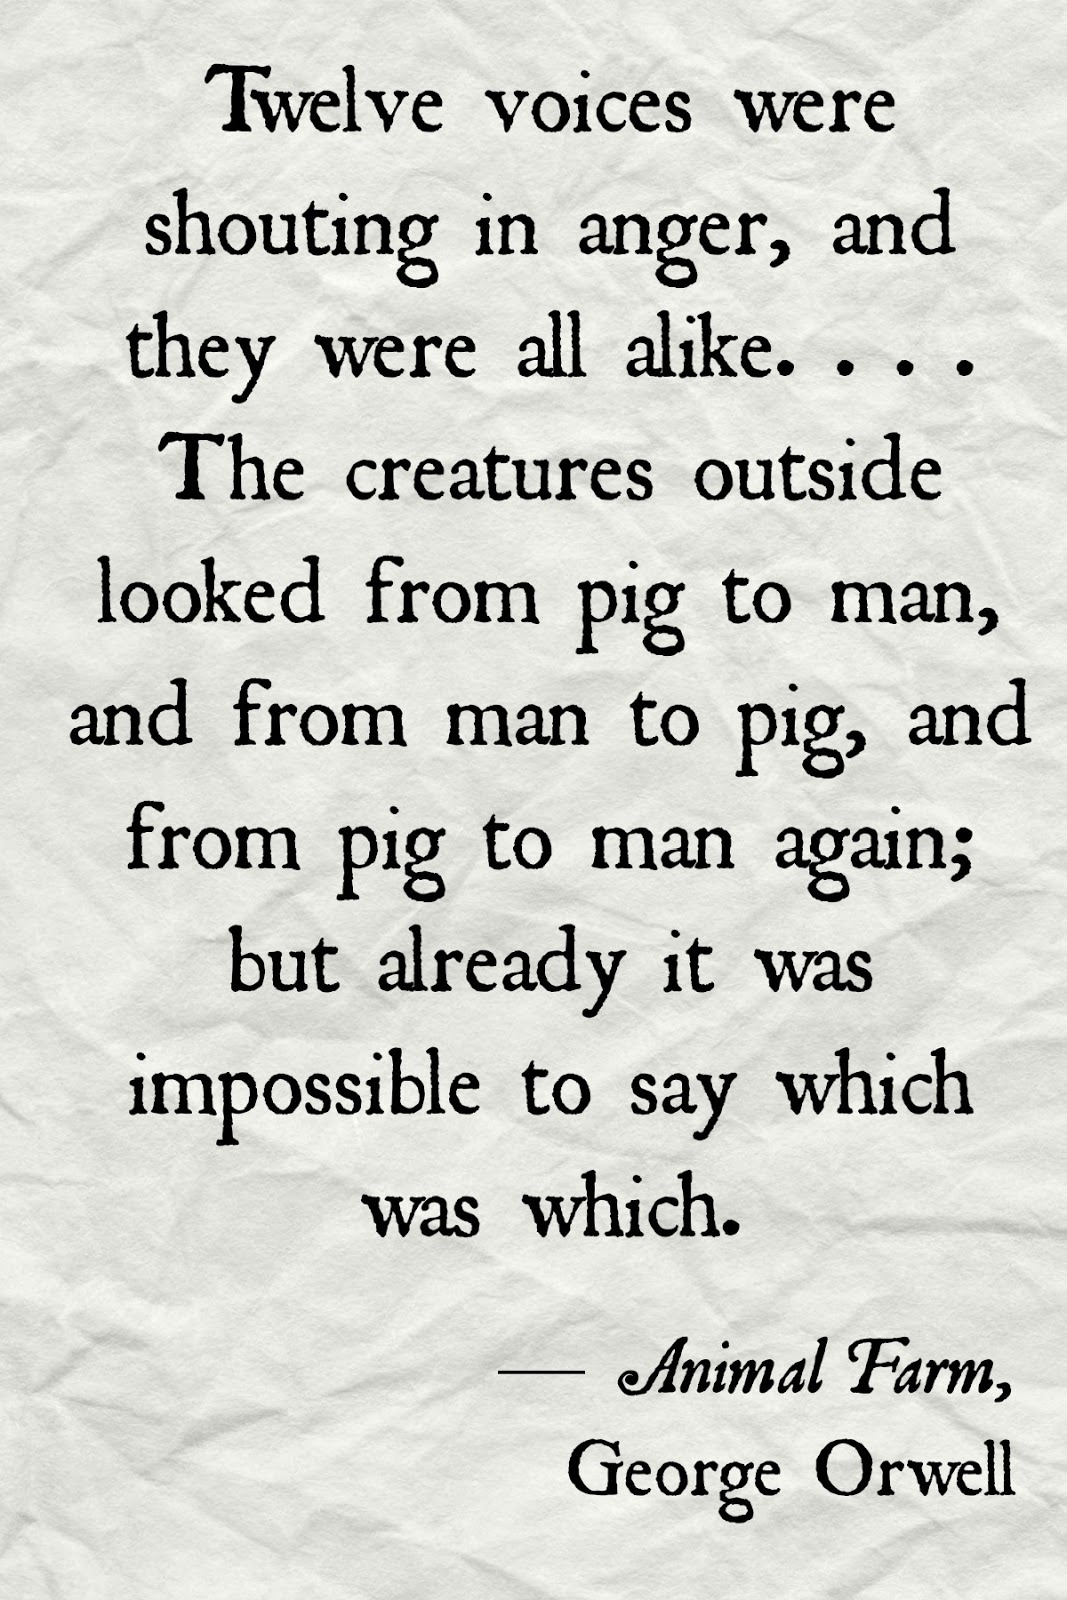 an analysis of leader and follower in animal farm by george orwell I studied animal farm back in year 10 so my analysis of the text is a bit mediocre but oh well  napoleon has learnt a lot as leader of animal farm and he has .